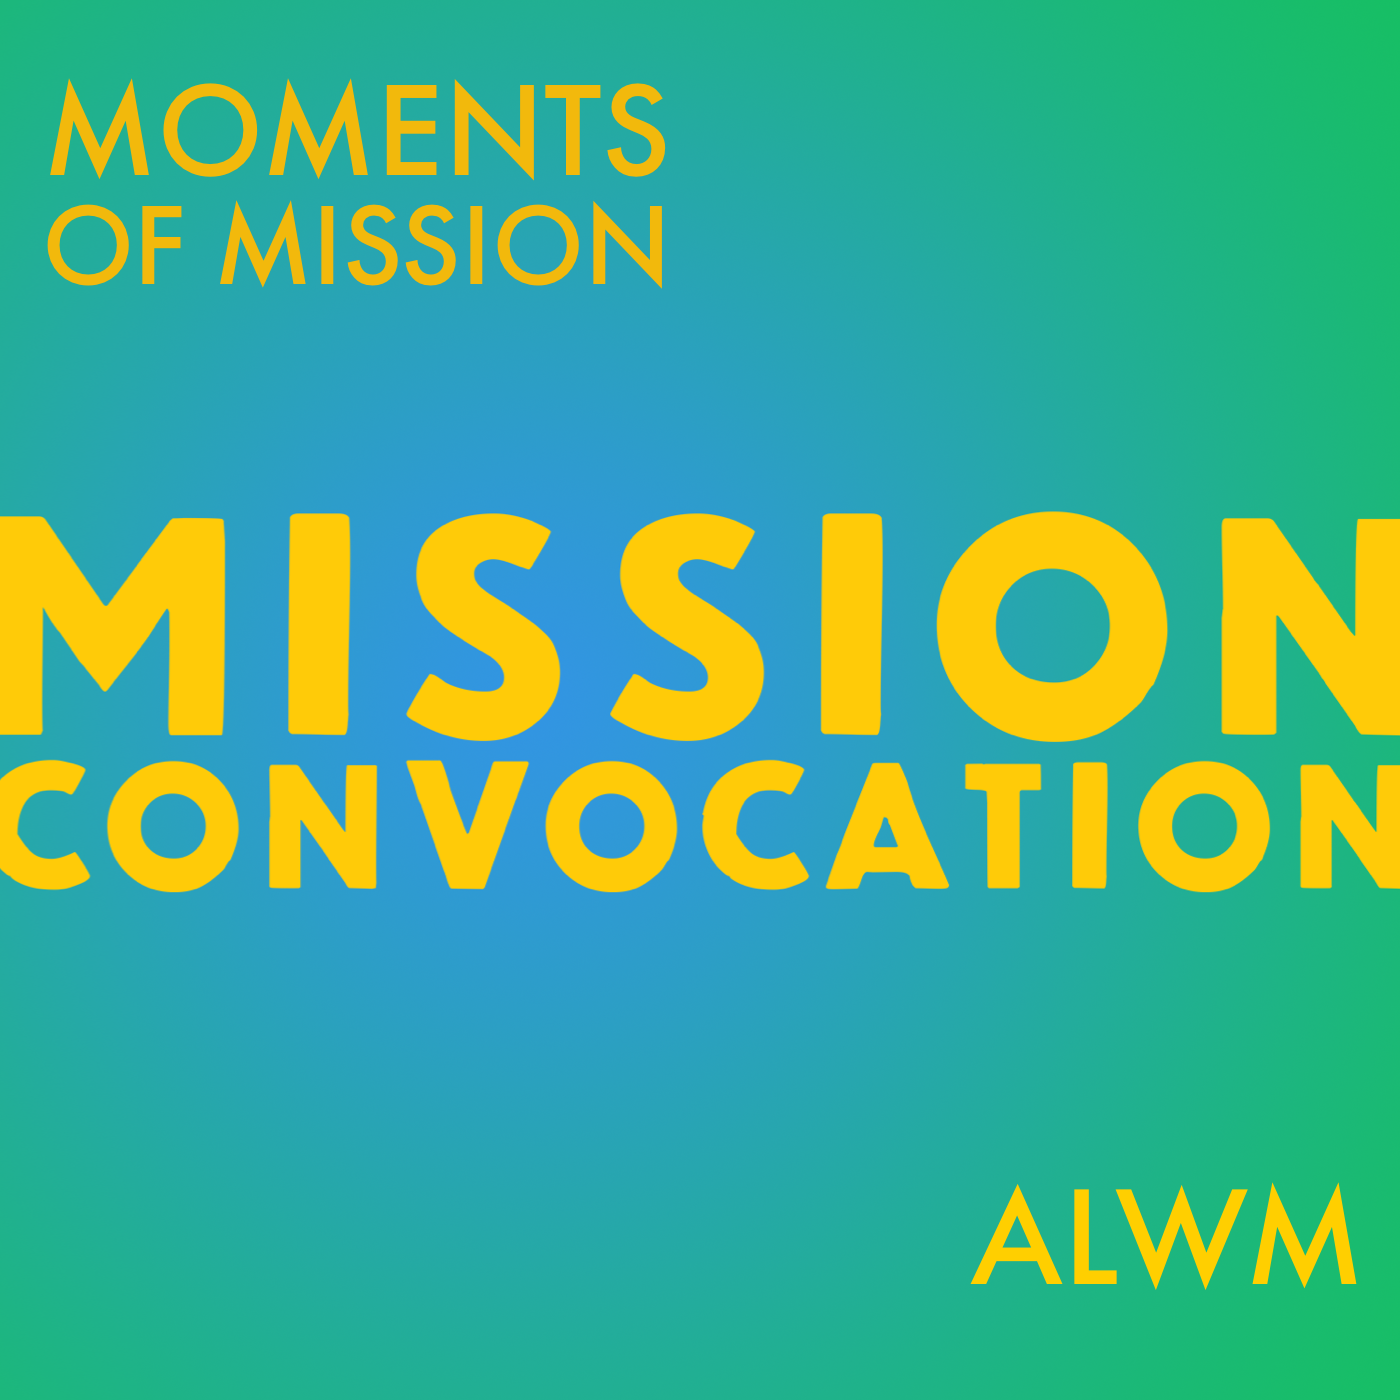 Moments of Mission – ALWM